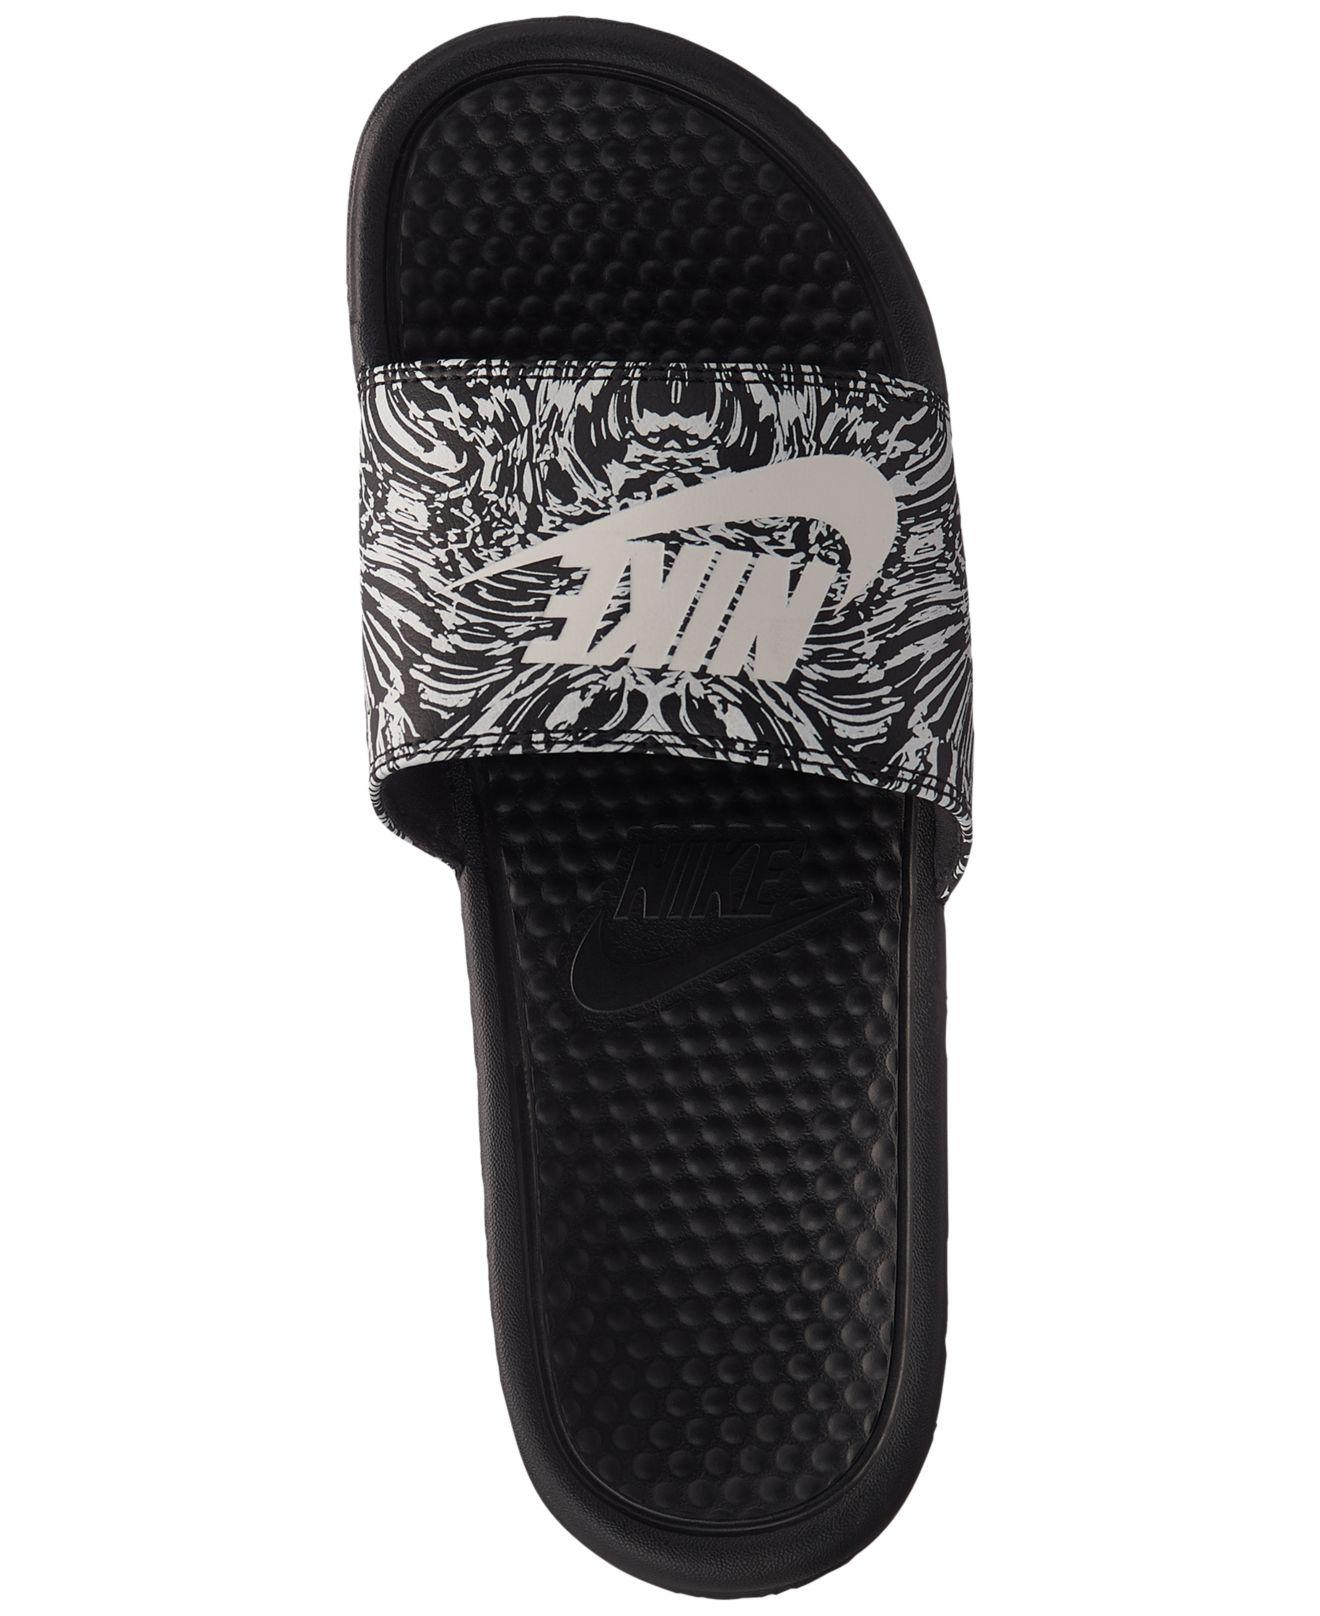 92eb377972e805 ... official lyst nike benassi jdi print slide sandals from finish line in  black for men 770fa